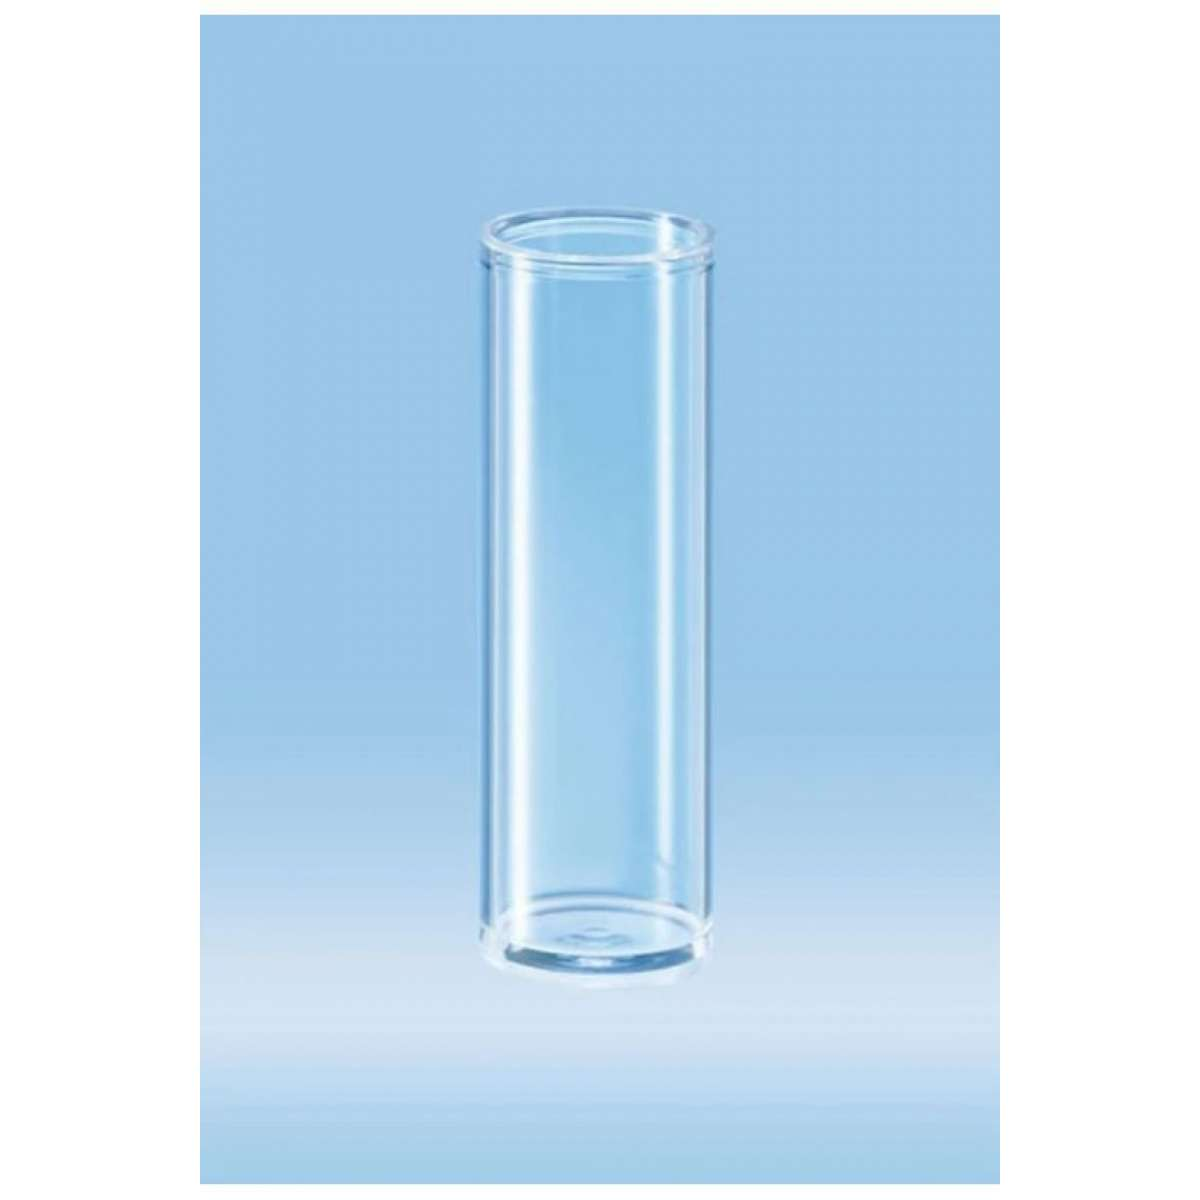 Plastic vials cylinder shaped for CIRNG Systems Viscometer Robot, Box  of 2000 vials